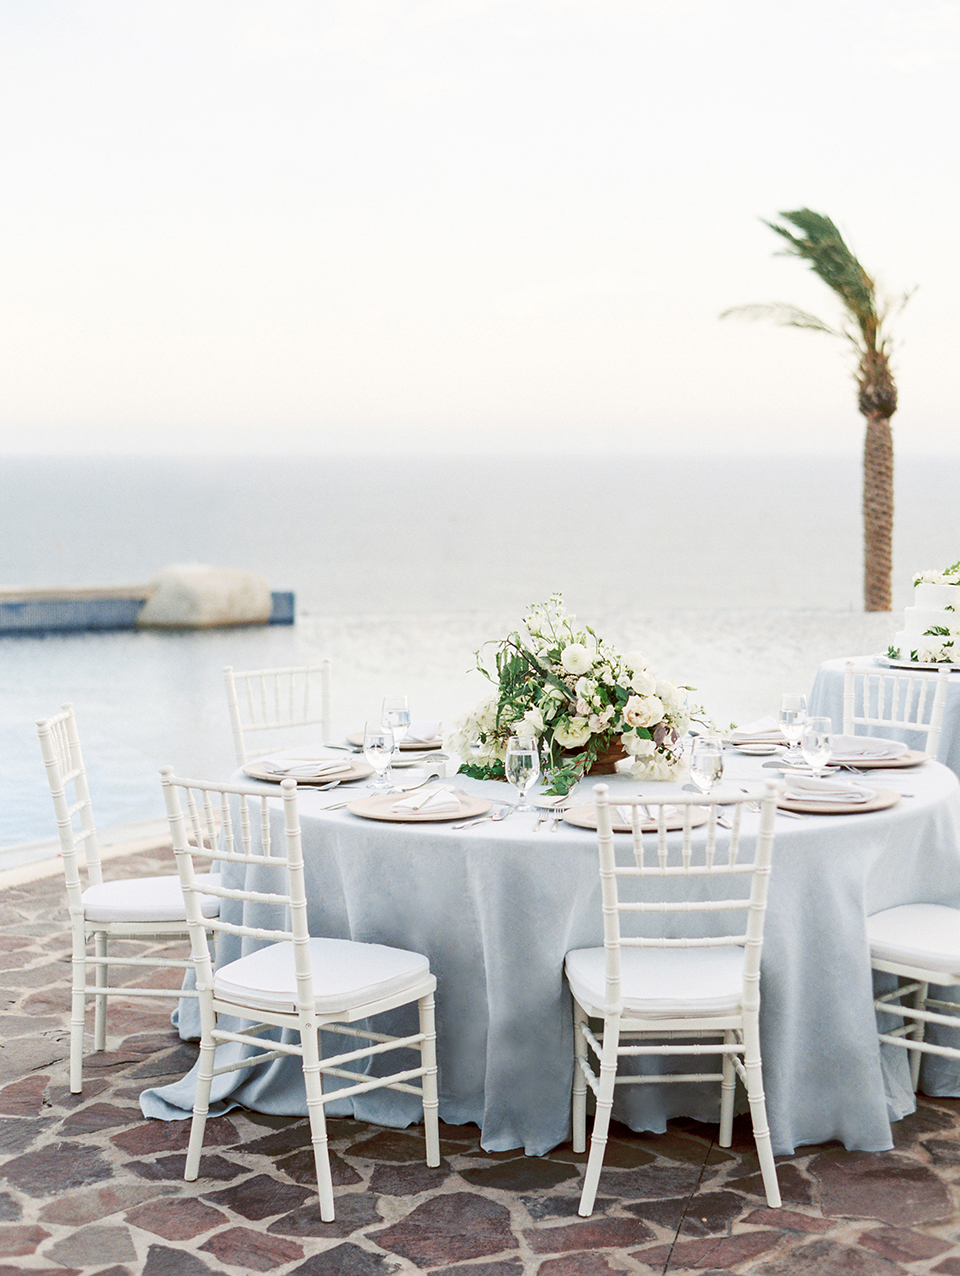 Cabo-Wedding-By-Lauren-Peele170-1.jpg